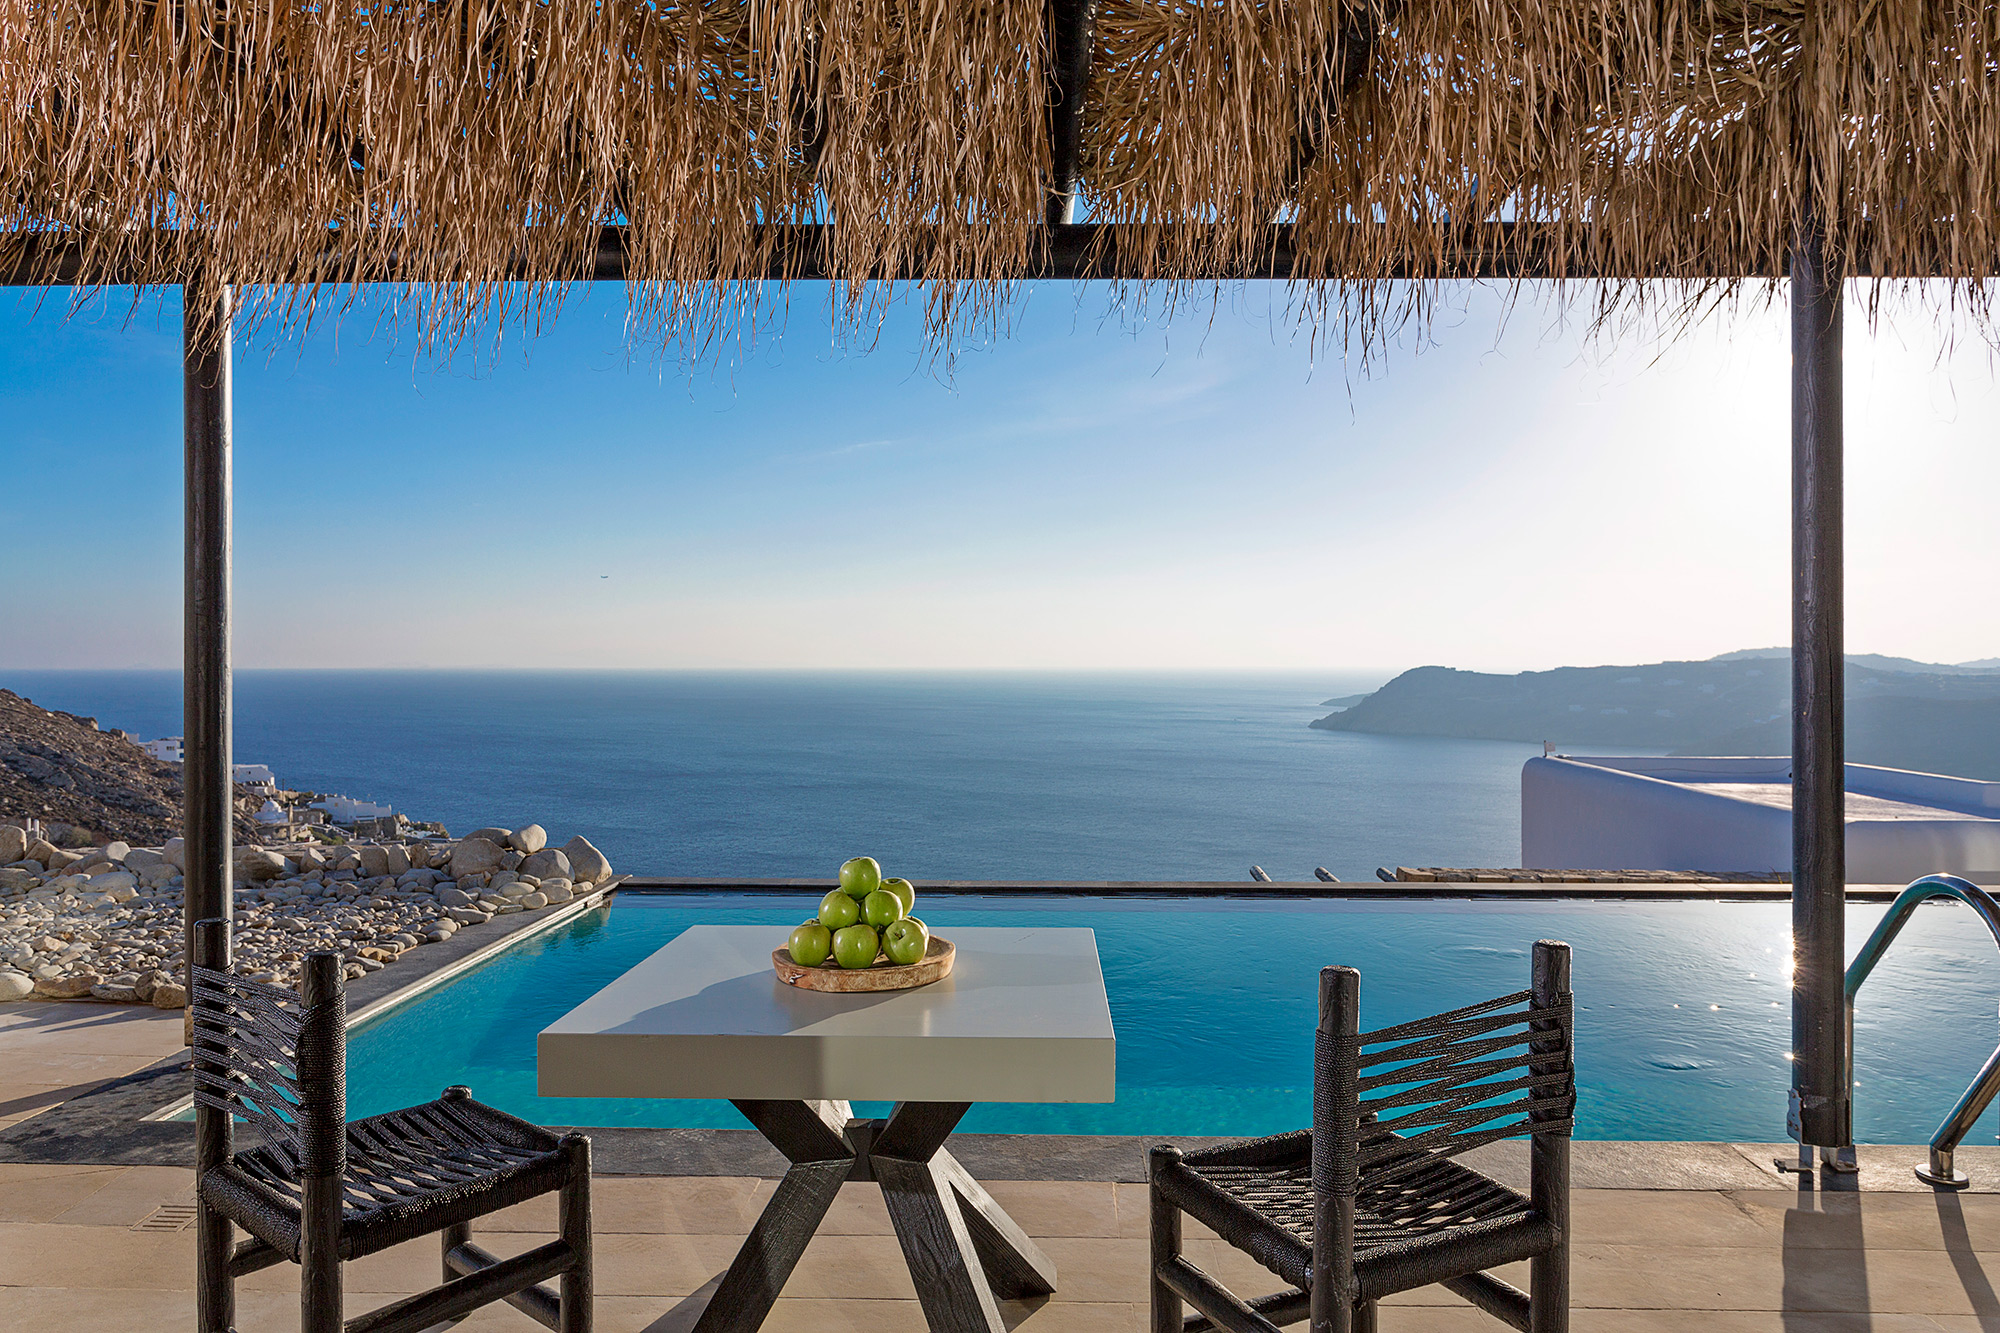 Myconian Utopia Resort. Elia, Mykonos